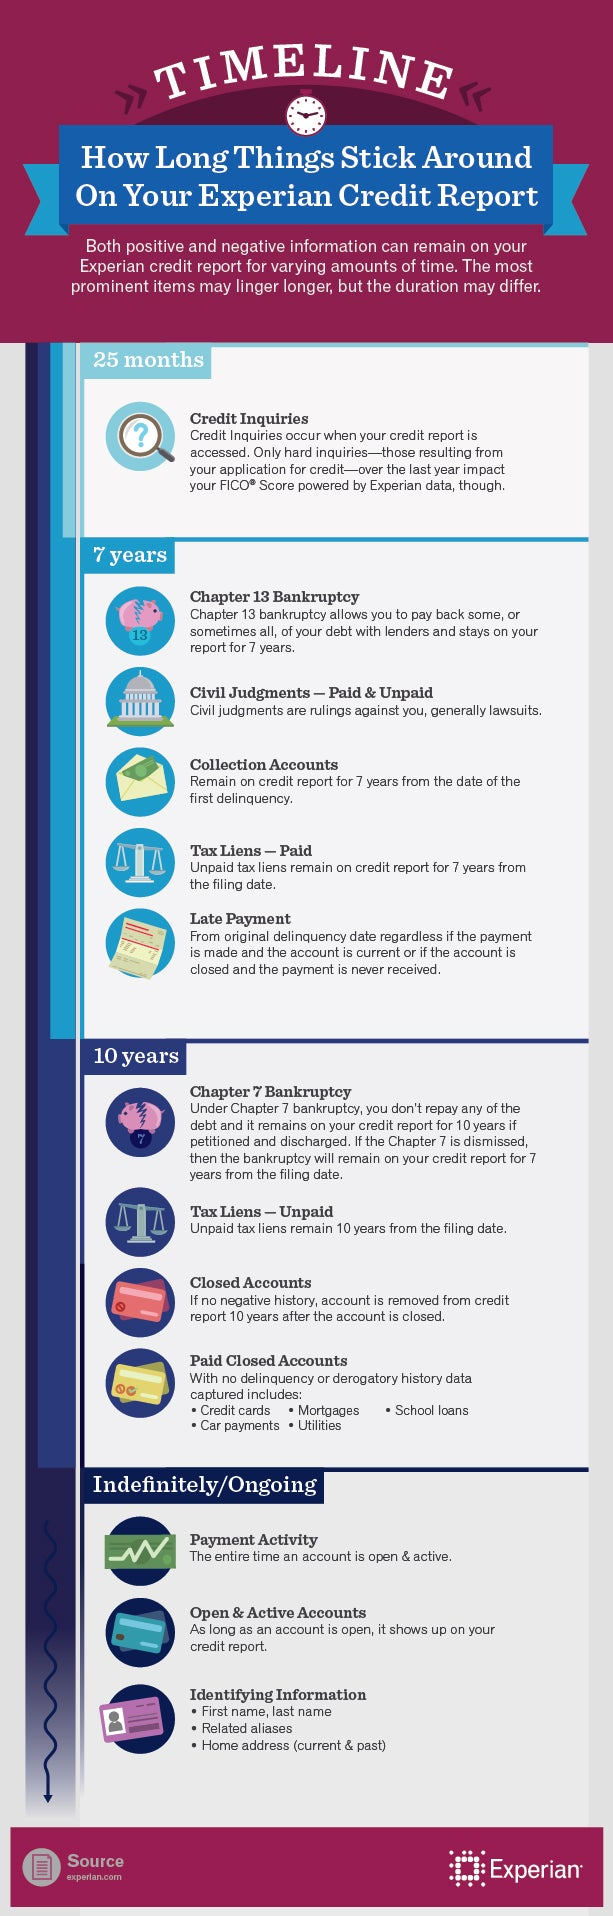 How Long Different Items Stay on Your Credit Report